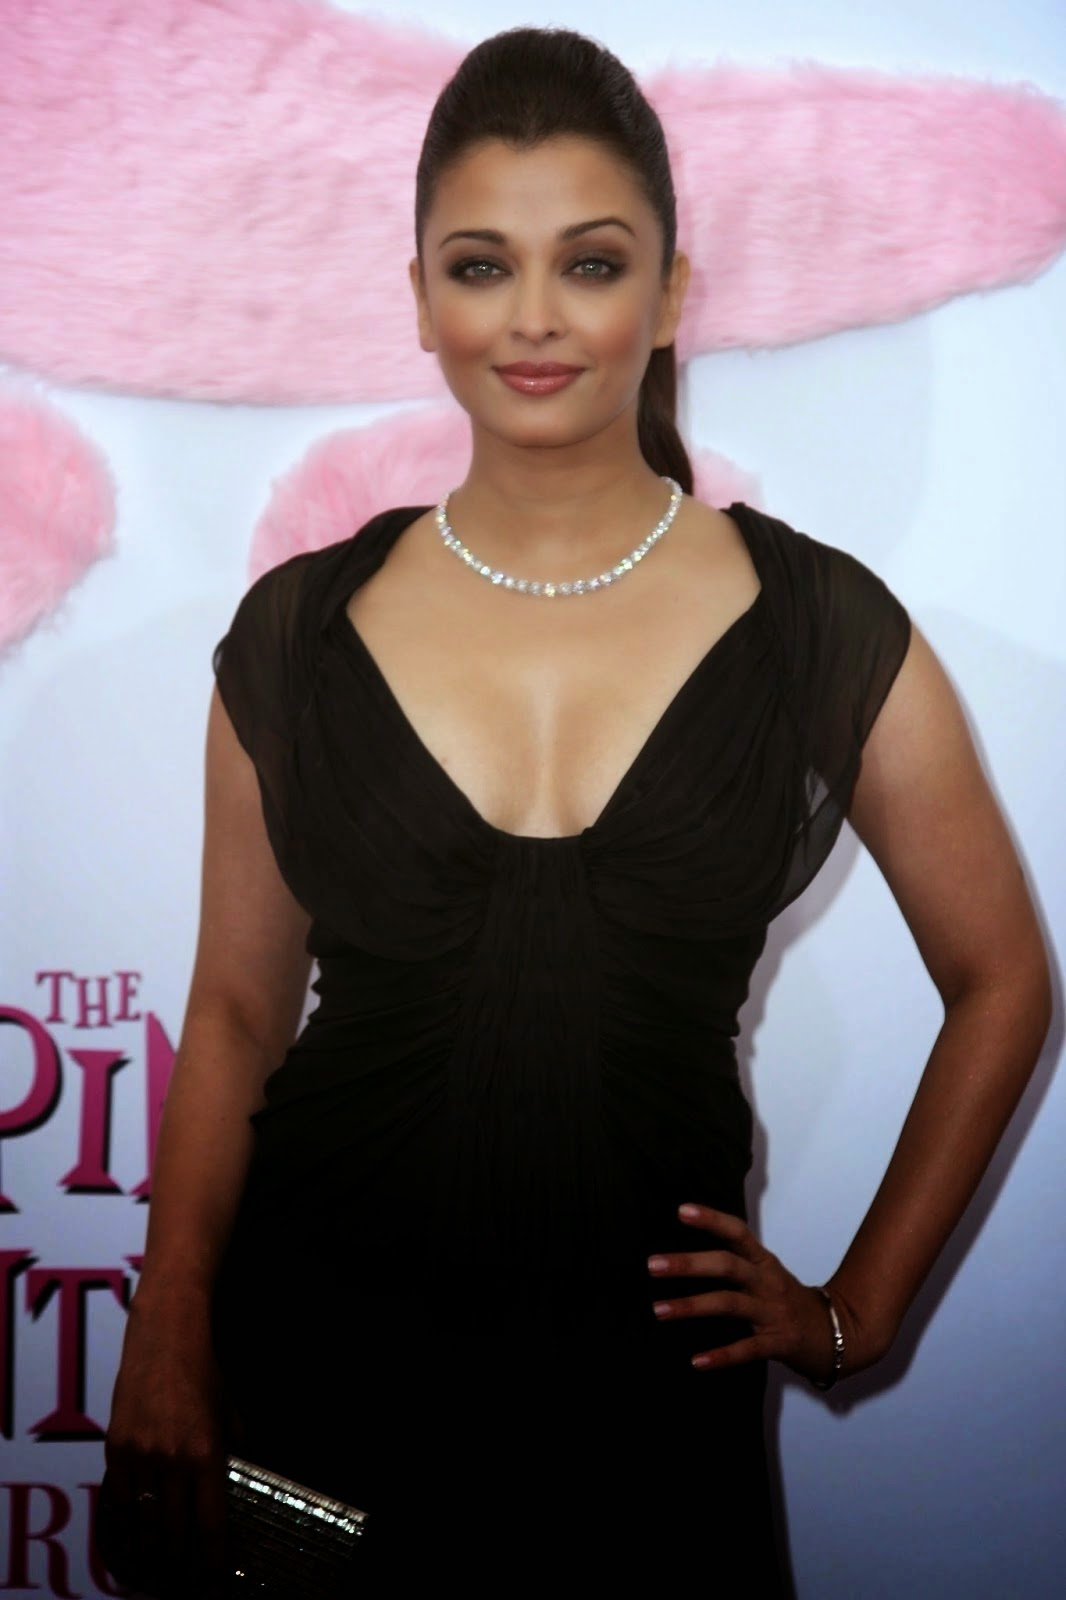 , Aishwarya Rai Bachchan Pink Panther 2 Premiere Pics in Black Dress